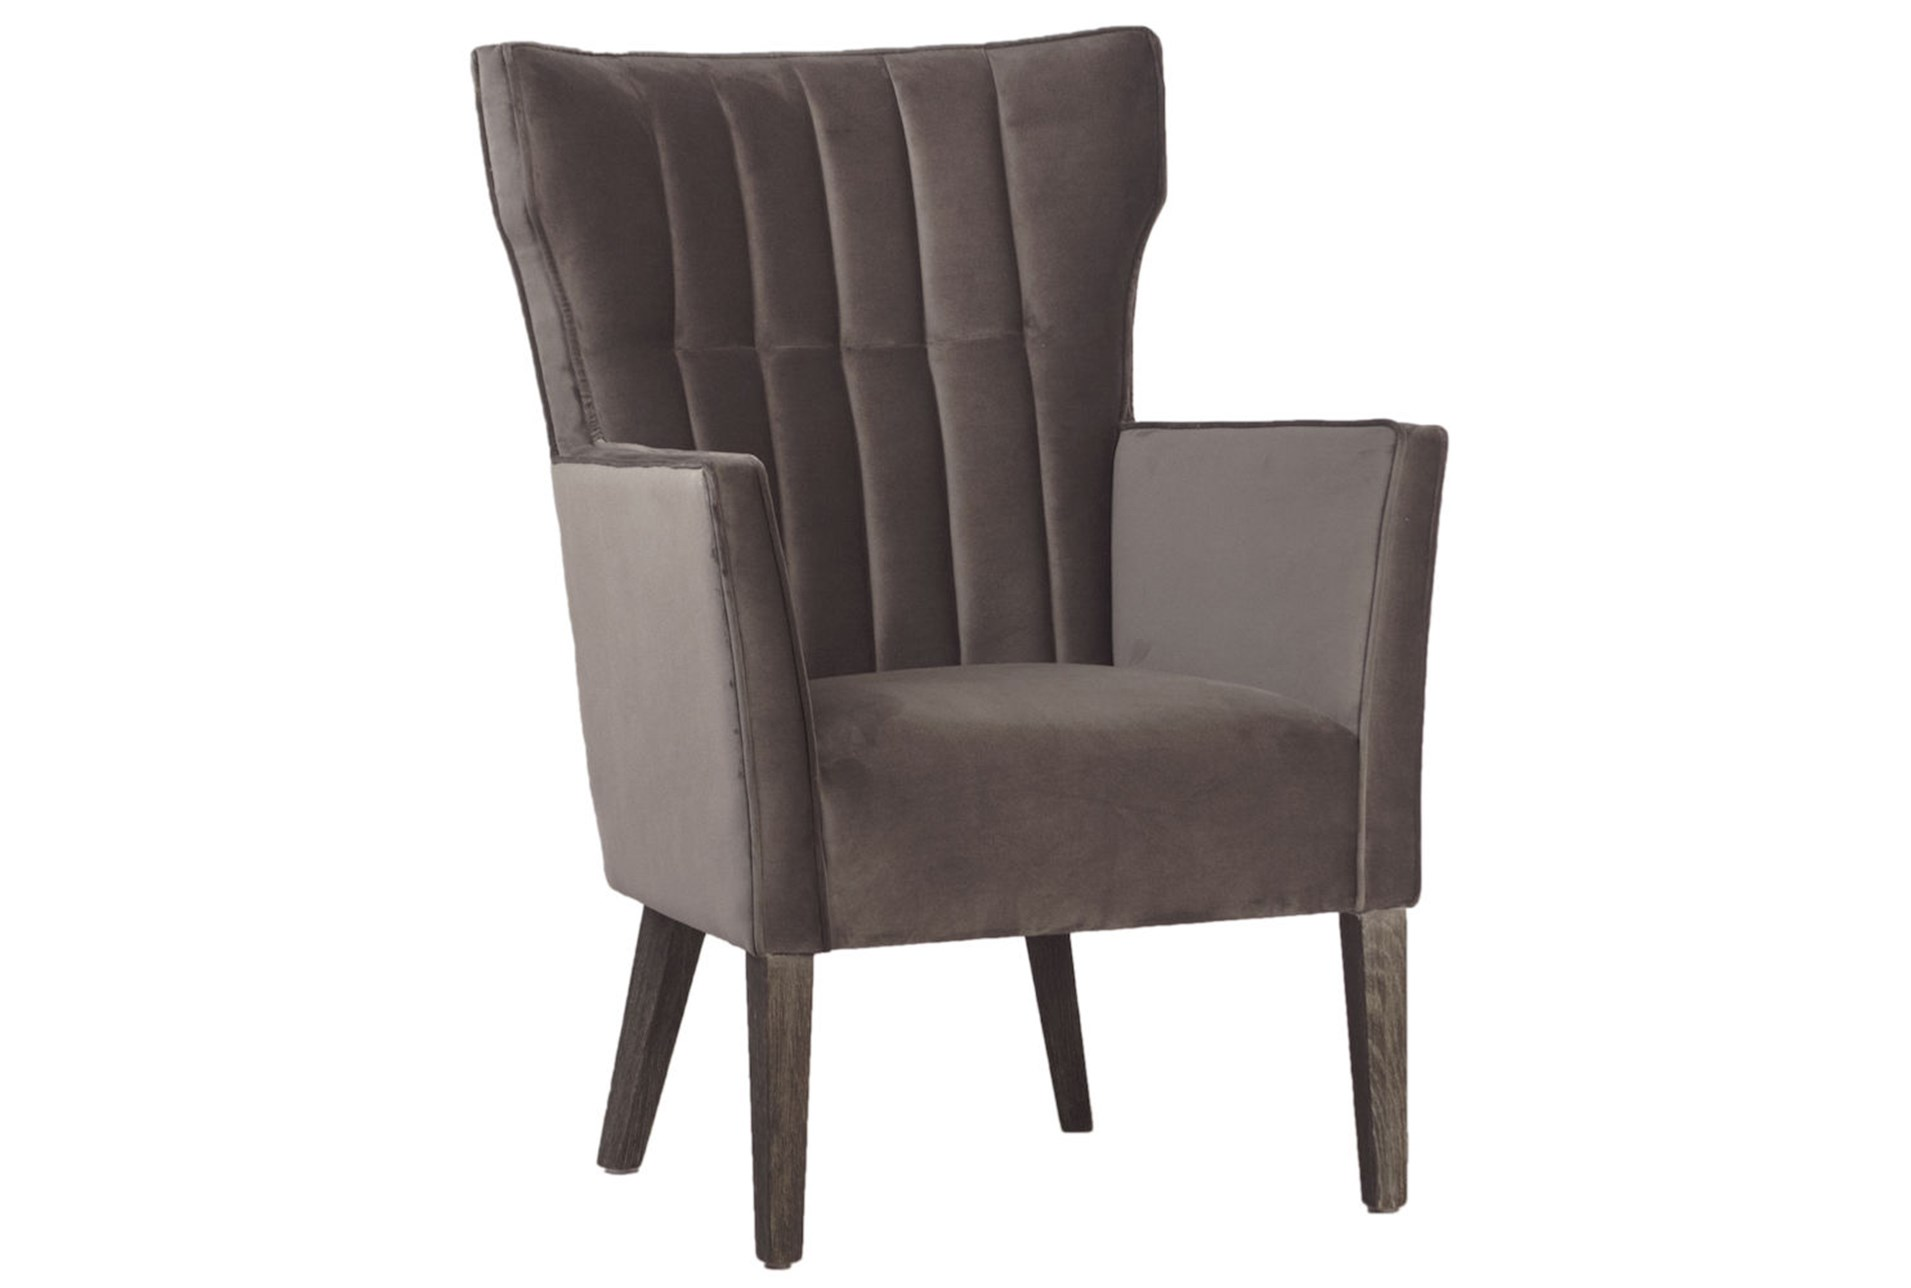 Swell Wing Back Grey Velvet Accent Chair Bralicious Painted Fabric Chair Ideas Braliciousco